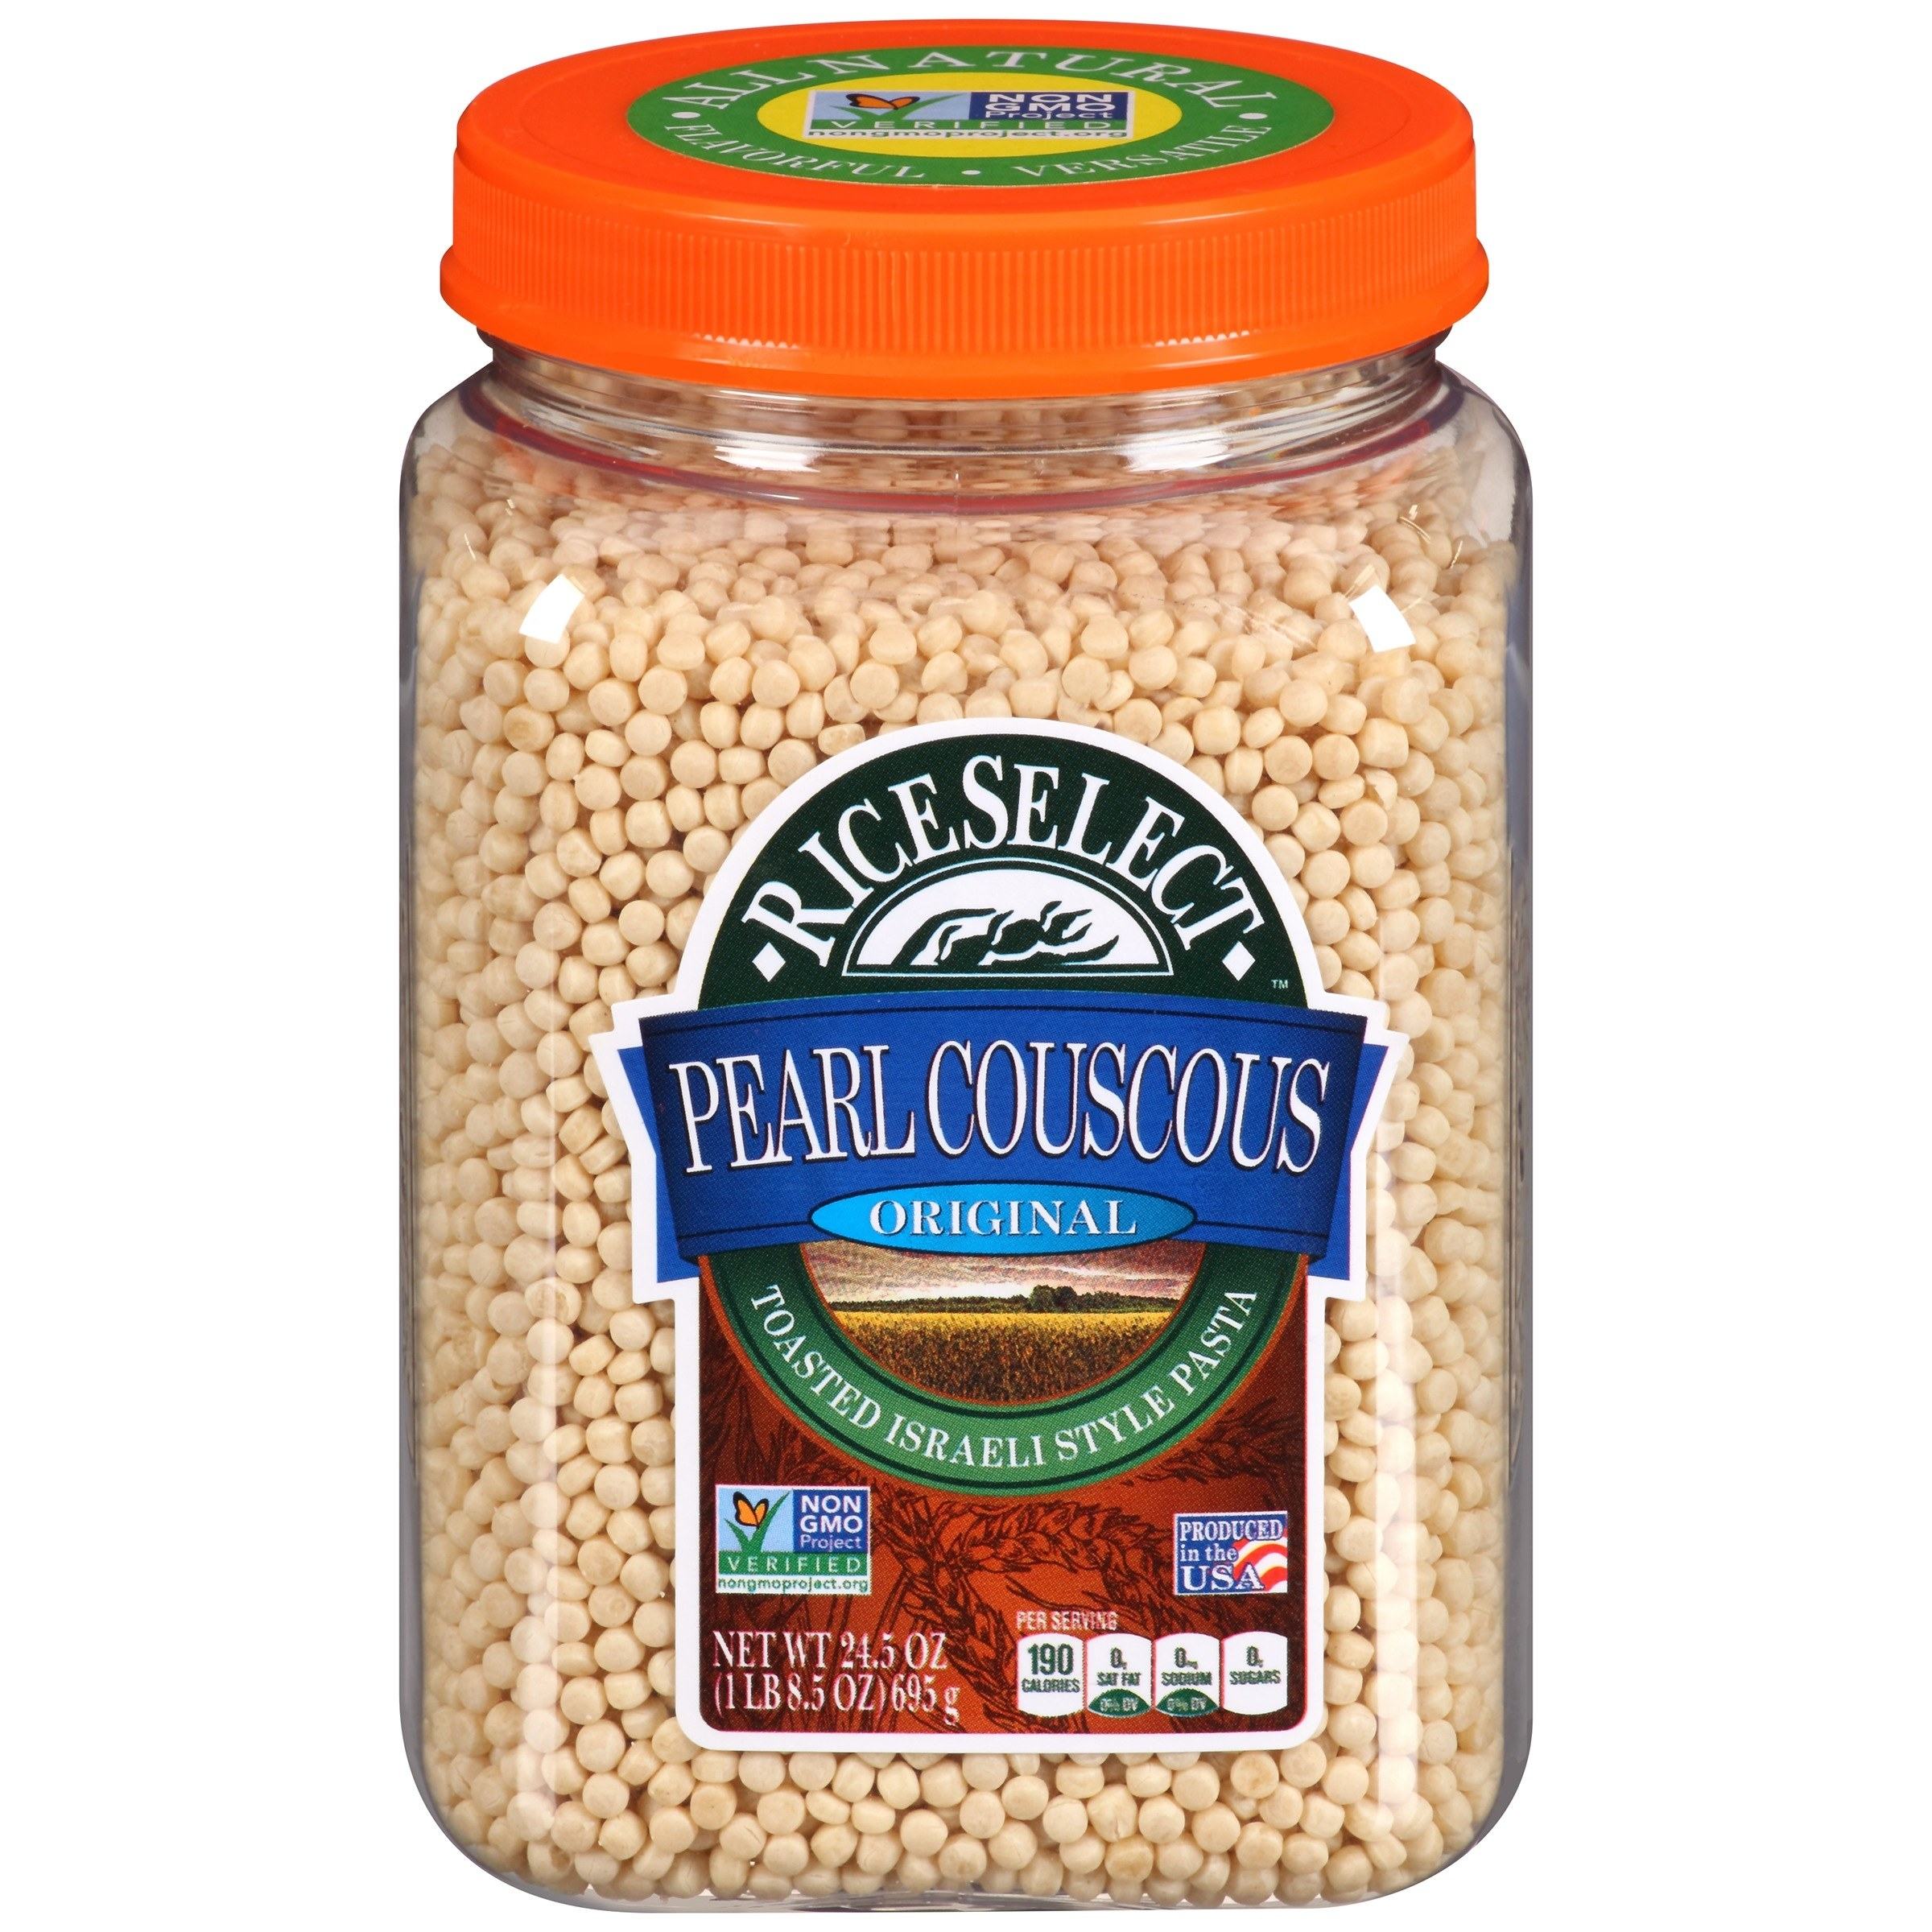 the container of couscous